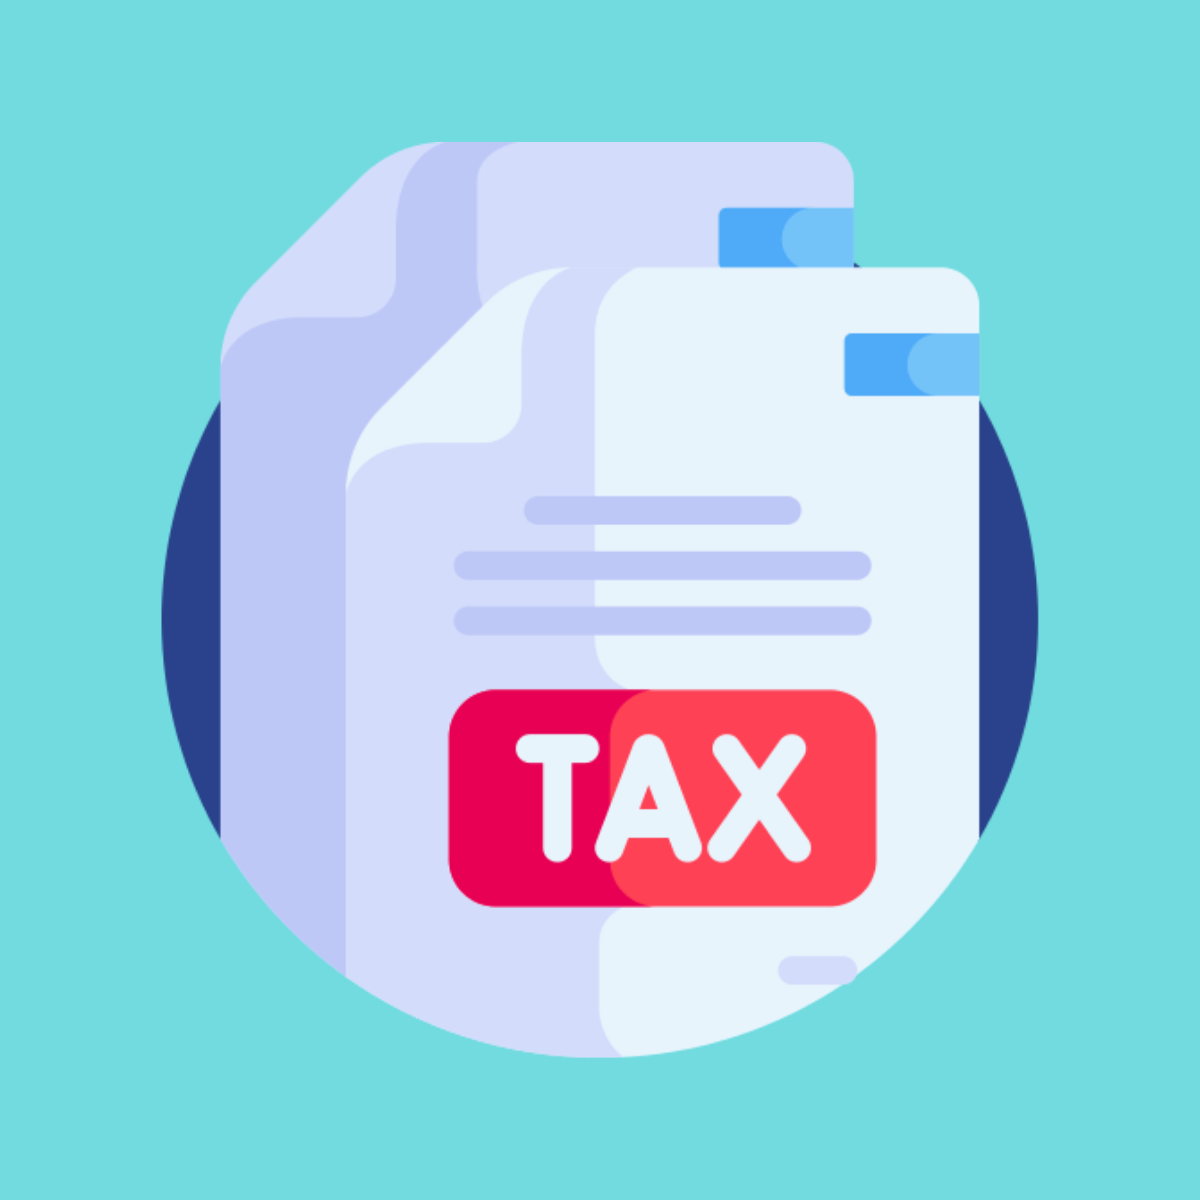 Income Taxes: Consultant (Self-Employed) vs. Payroll Employee